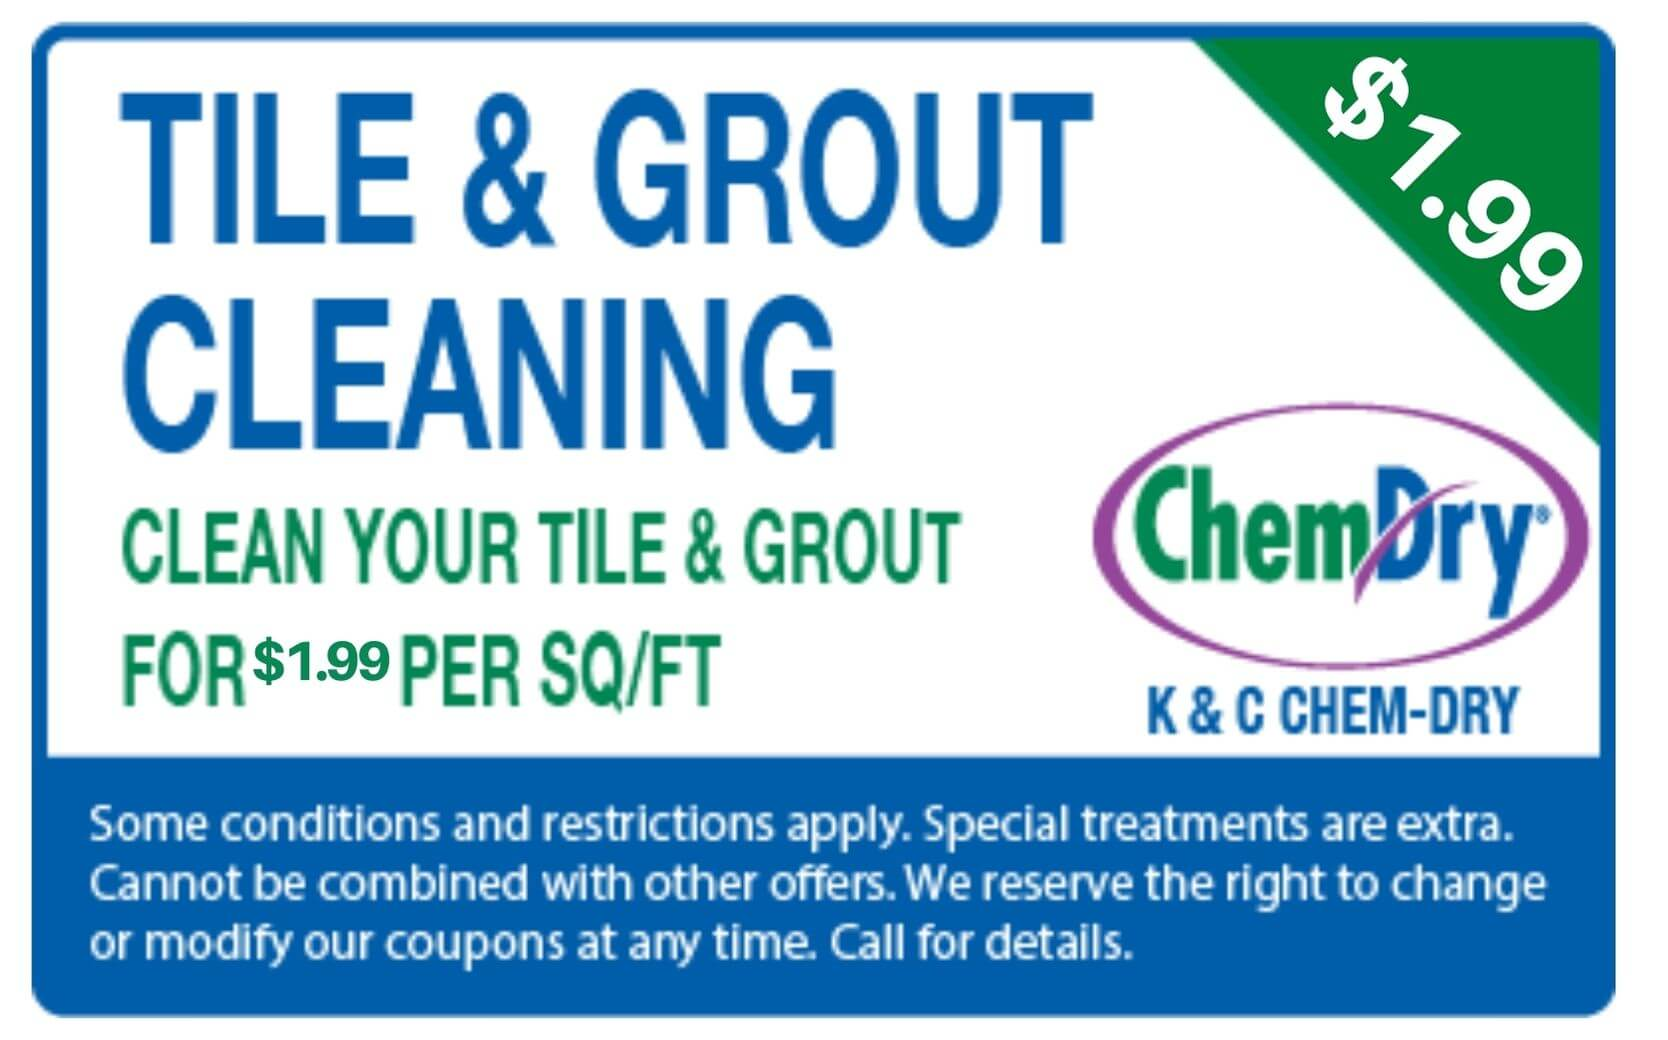 tile cleaning for 1.99 per sq/ft coupon